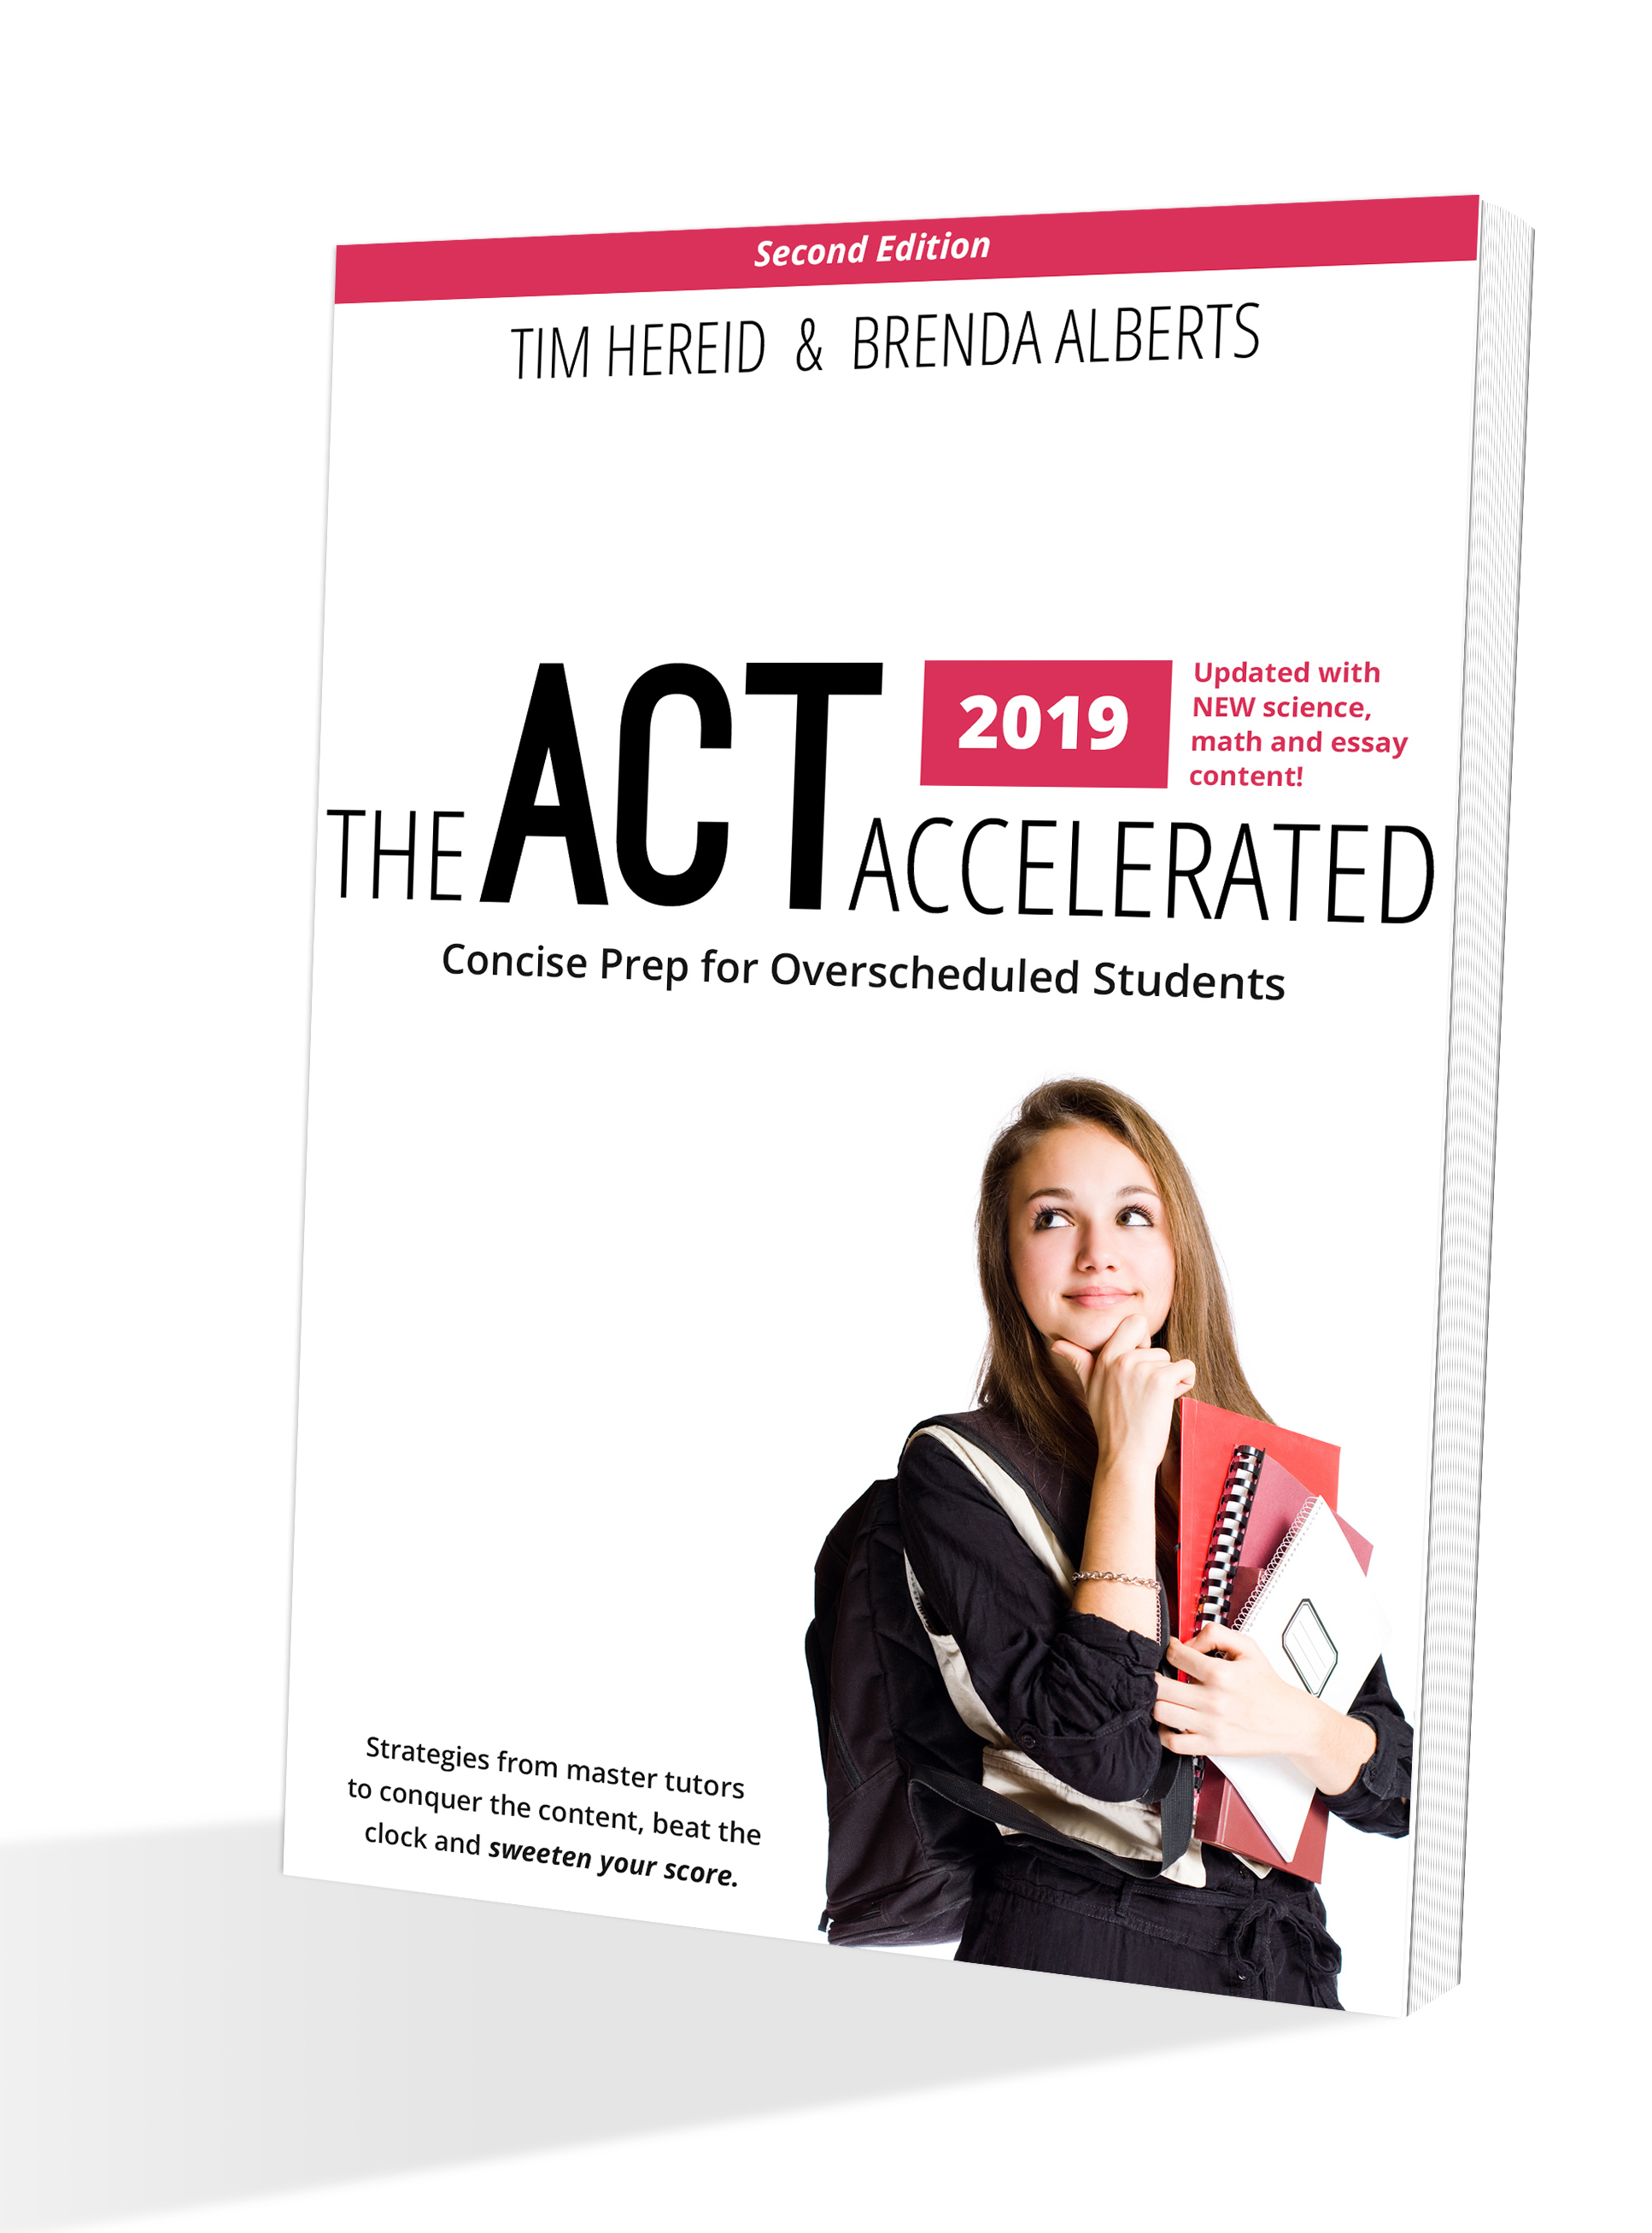 The ACT Accelerated - A no-nonsense prep book featuring the winning strategies of myself and fellow master-tutor Brenda Alberts. Over the past decade, we've improved the ACT scores of over 350 Minnesota students. At 150 pages, the length is perfect for students pursuing self-study on a tight schedule -- and a modest budget. Packed with hundreds of practice questions, diagrams, strategies and 50 videos, The ACT Accelerated is an unparalleled guide to the ACT, the most important college entrance exam today.